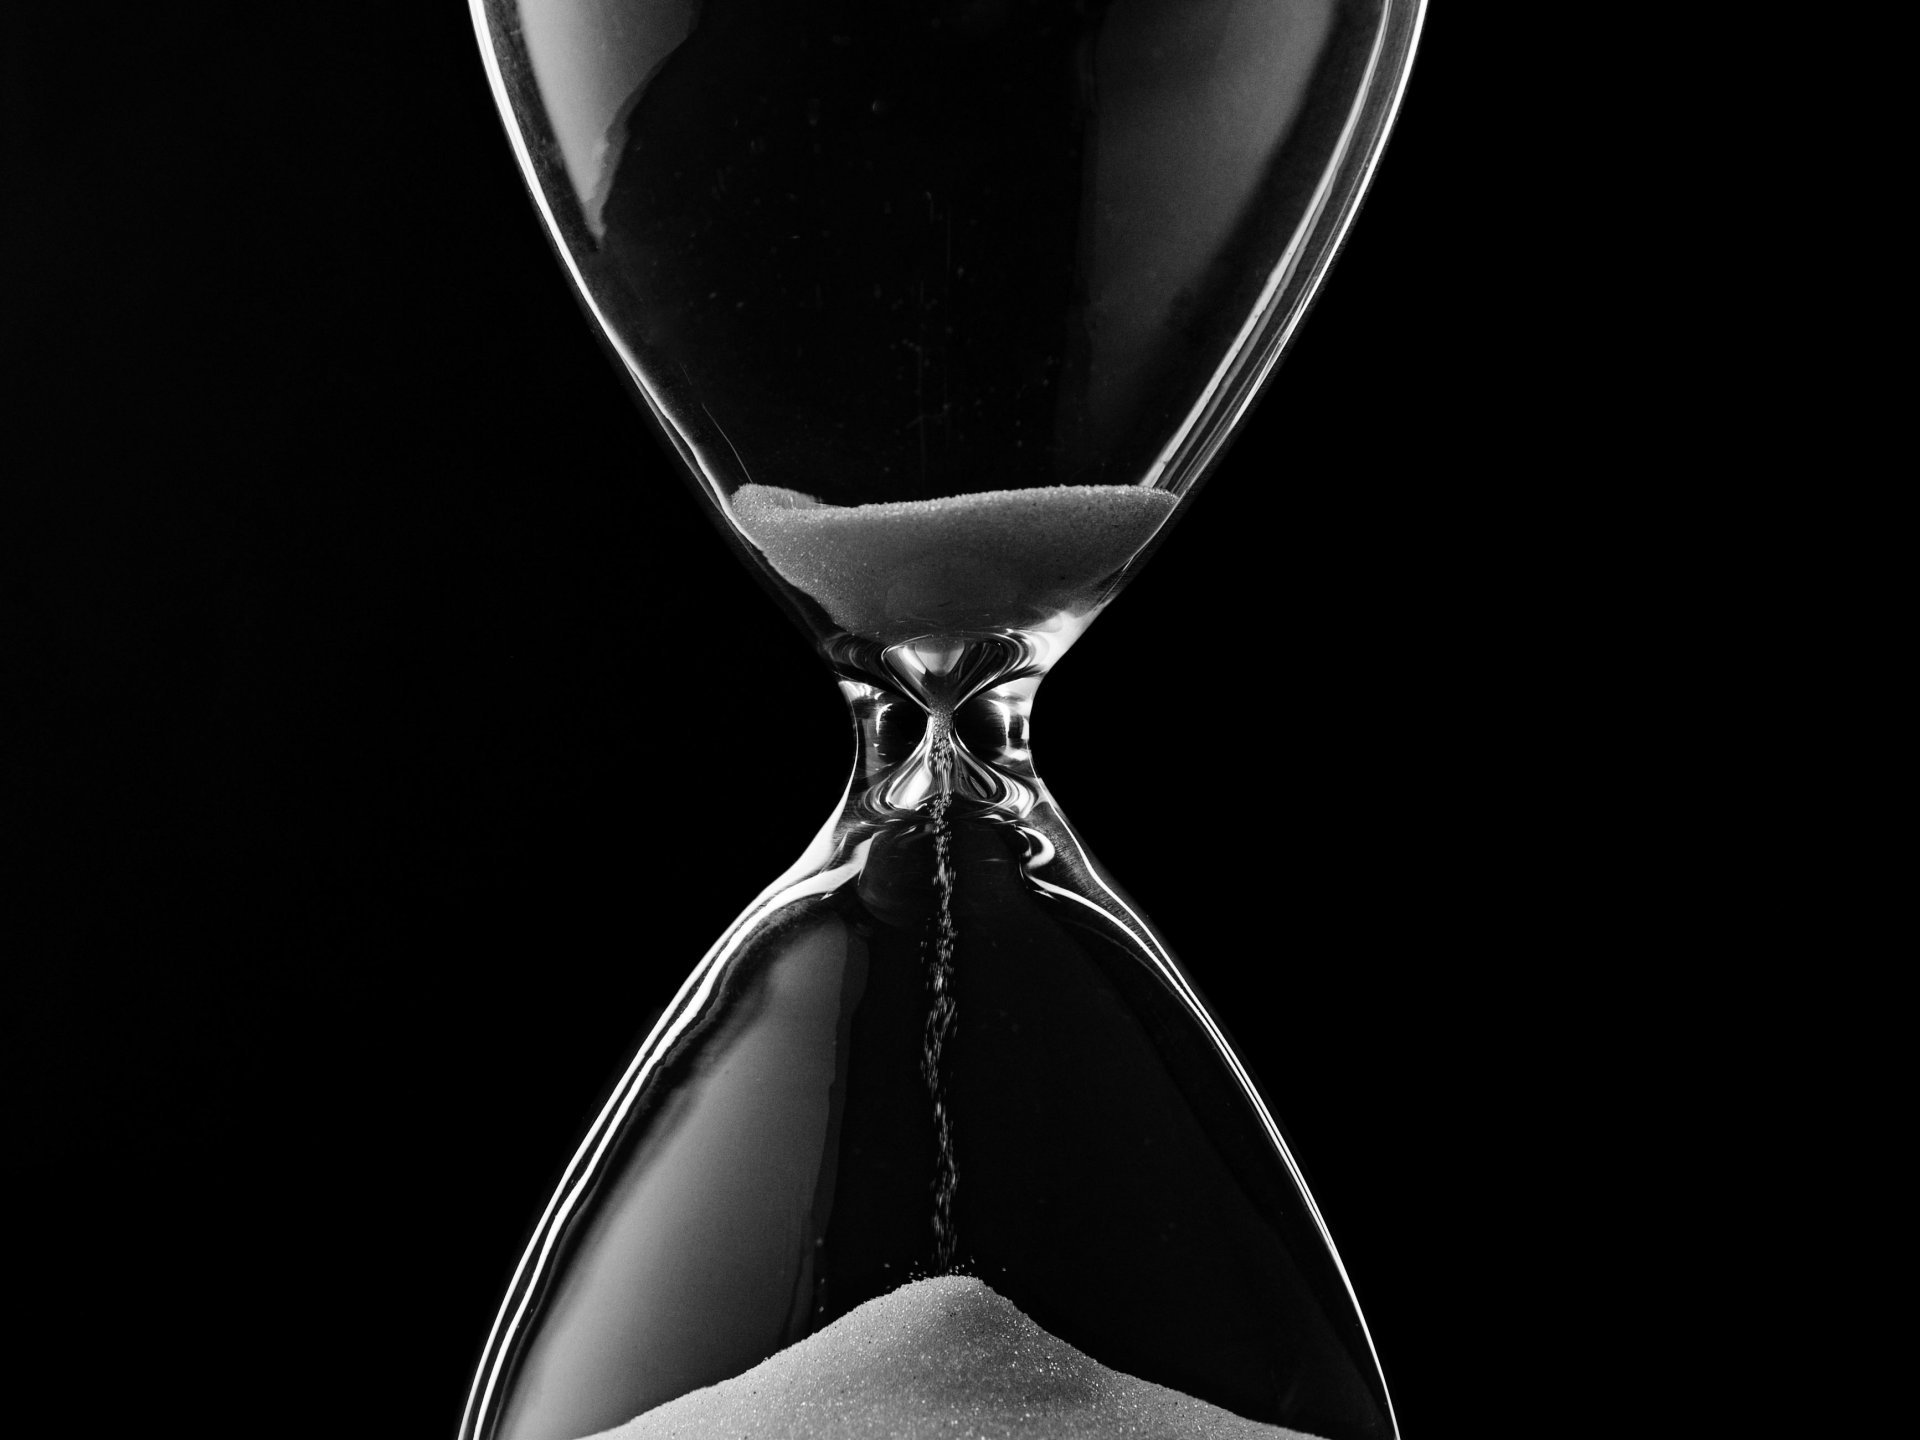 monochrome hourglass hd wallpaper 65046